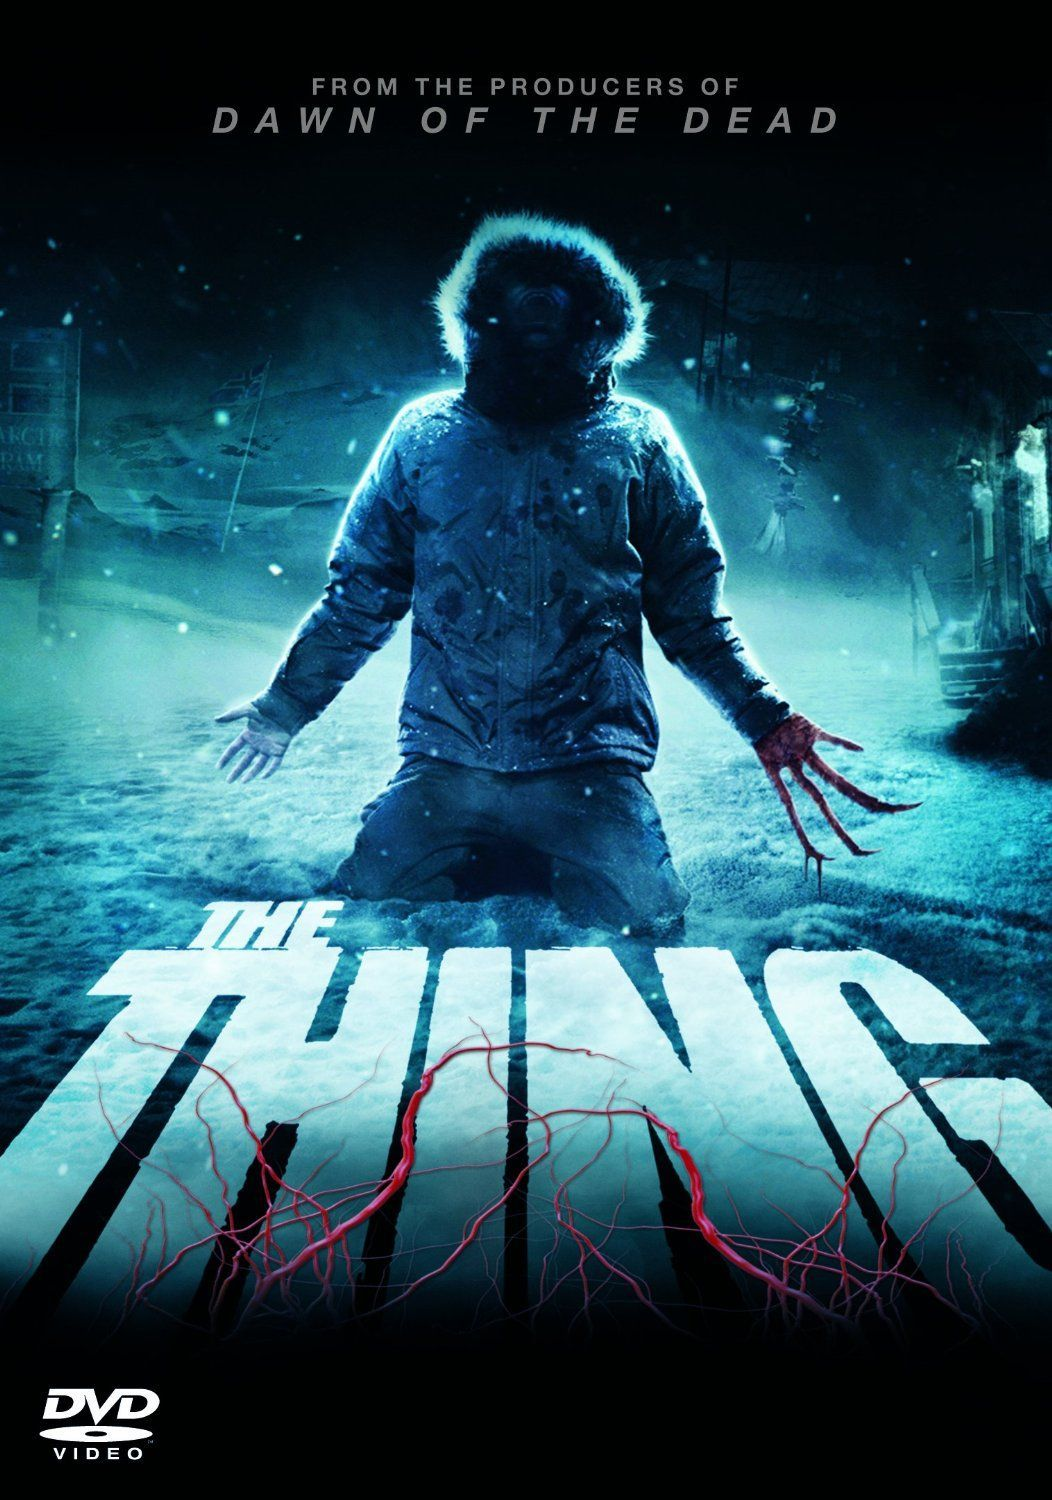 The Thing 2011 DVD Cover Horror movie posters, Horror